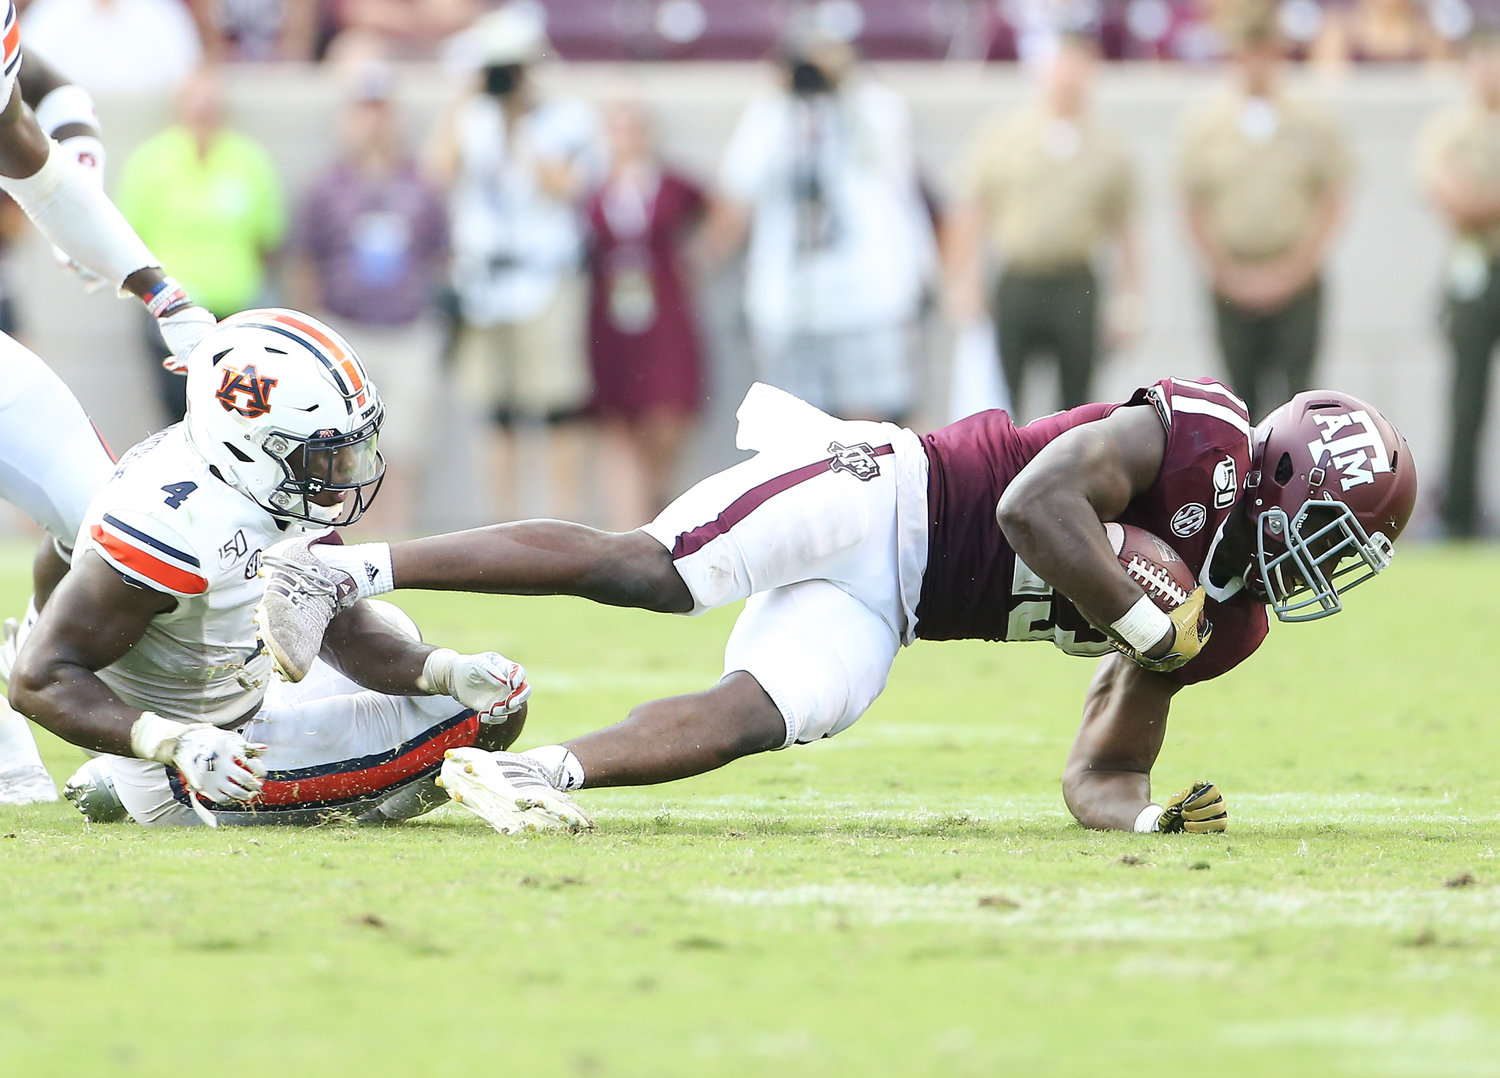 Texas A&M Aggies running back Jacob Kibodi (23) is brought down by Auburn Tigers defensive back Noah Igbinoghene (4) during an NCAA football game between Texas A&M and Auburn at Kyle Field in College Station, Texas, on September 21, 2019.